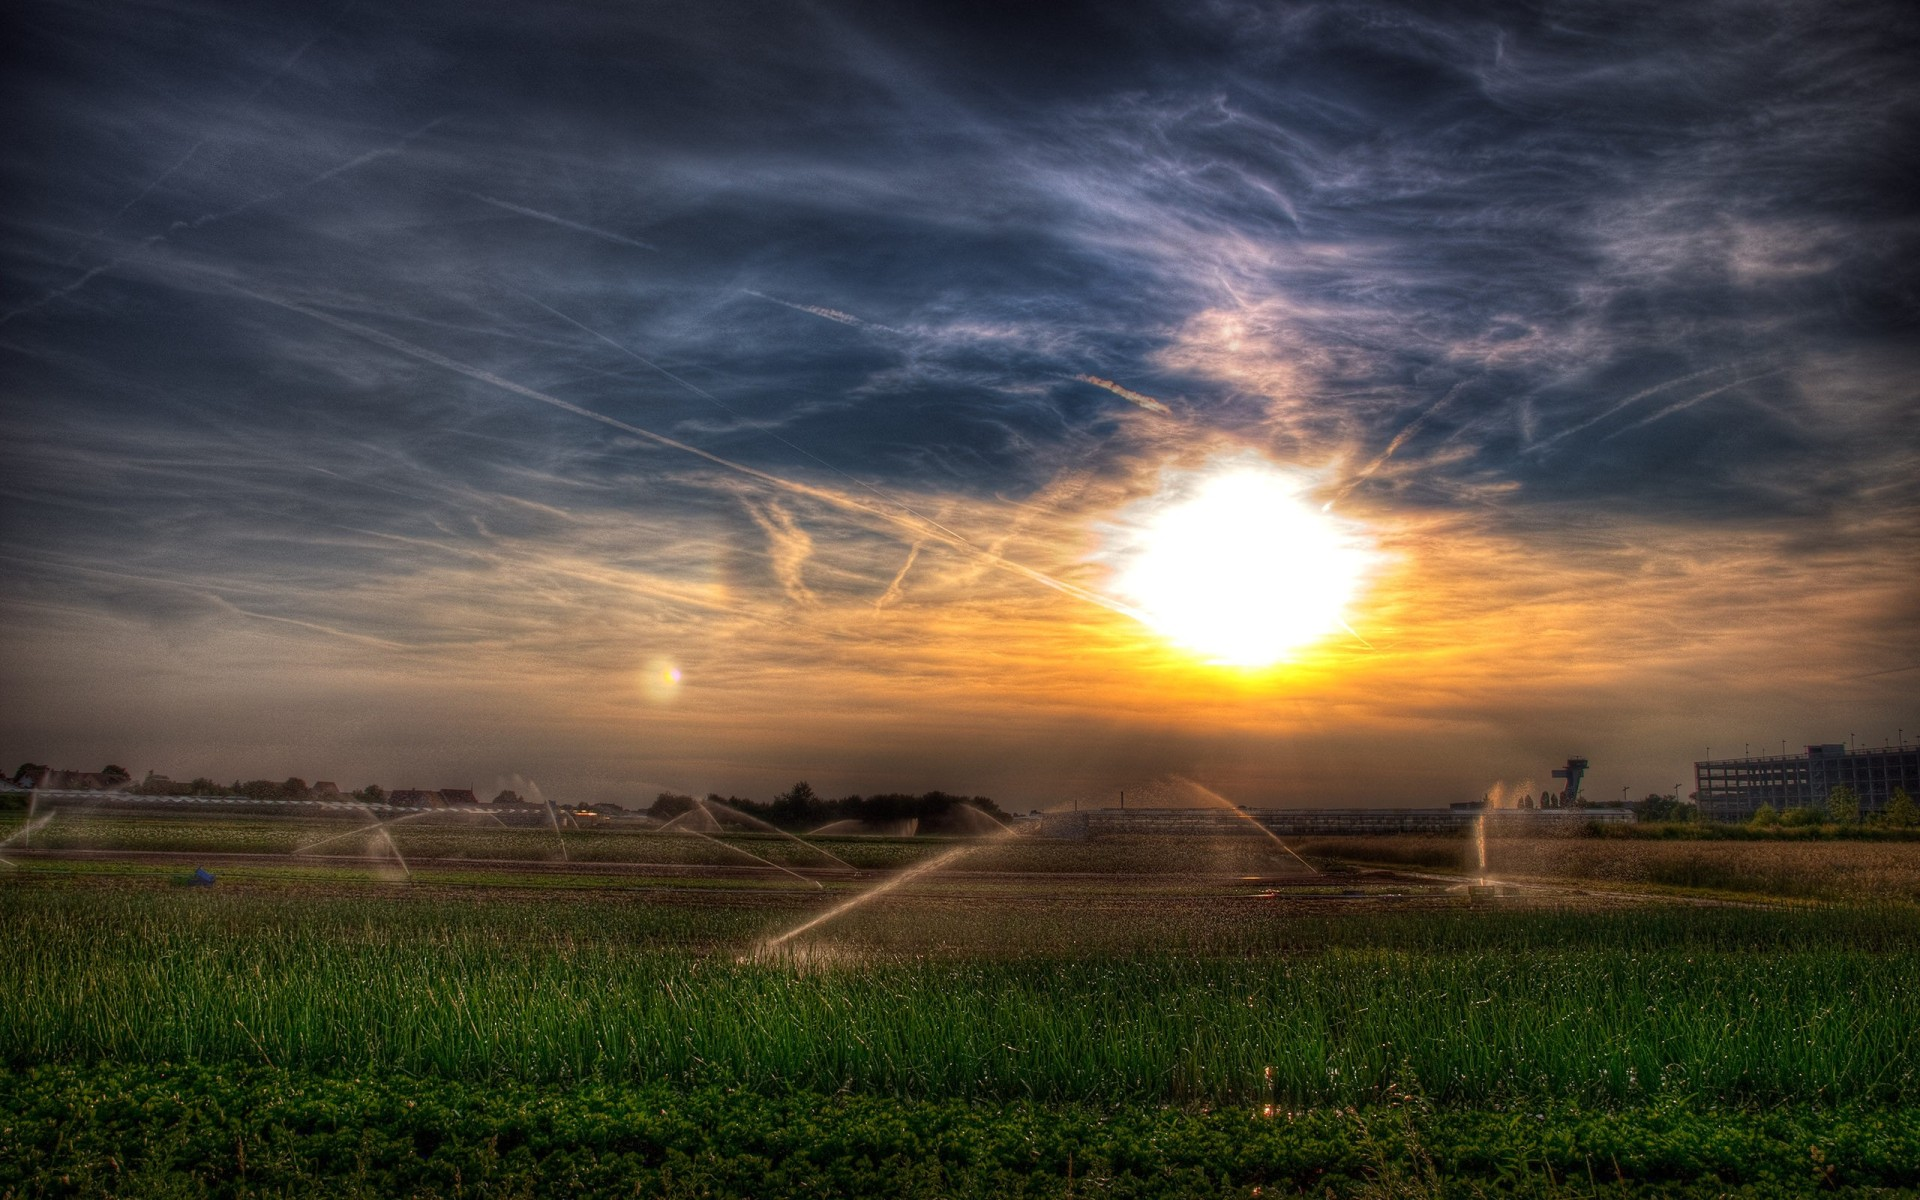 Water Irrigation System in the Field widescreen wallpaper Wide 1920x1200